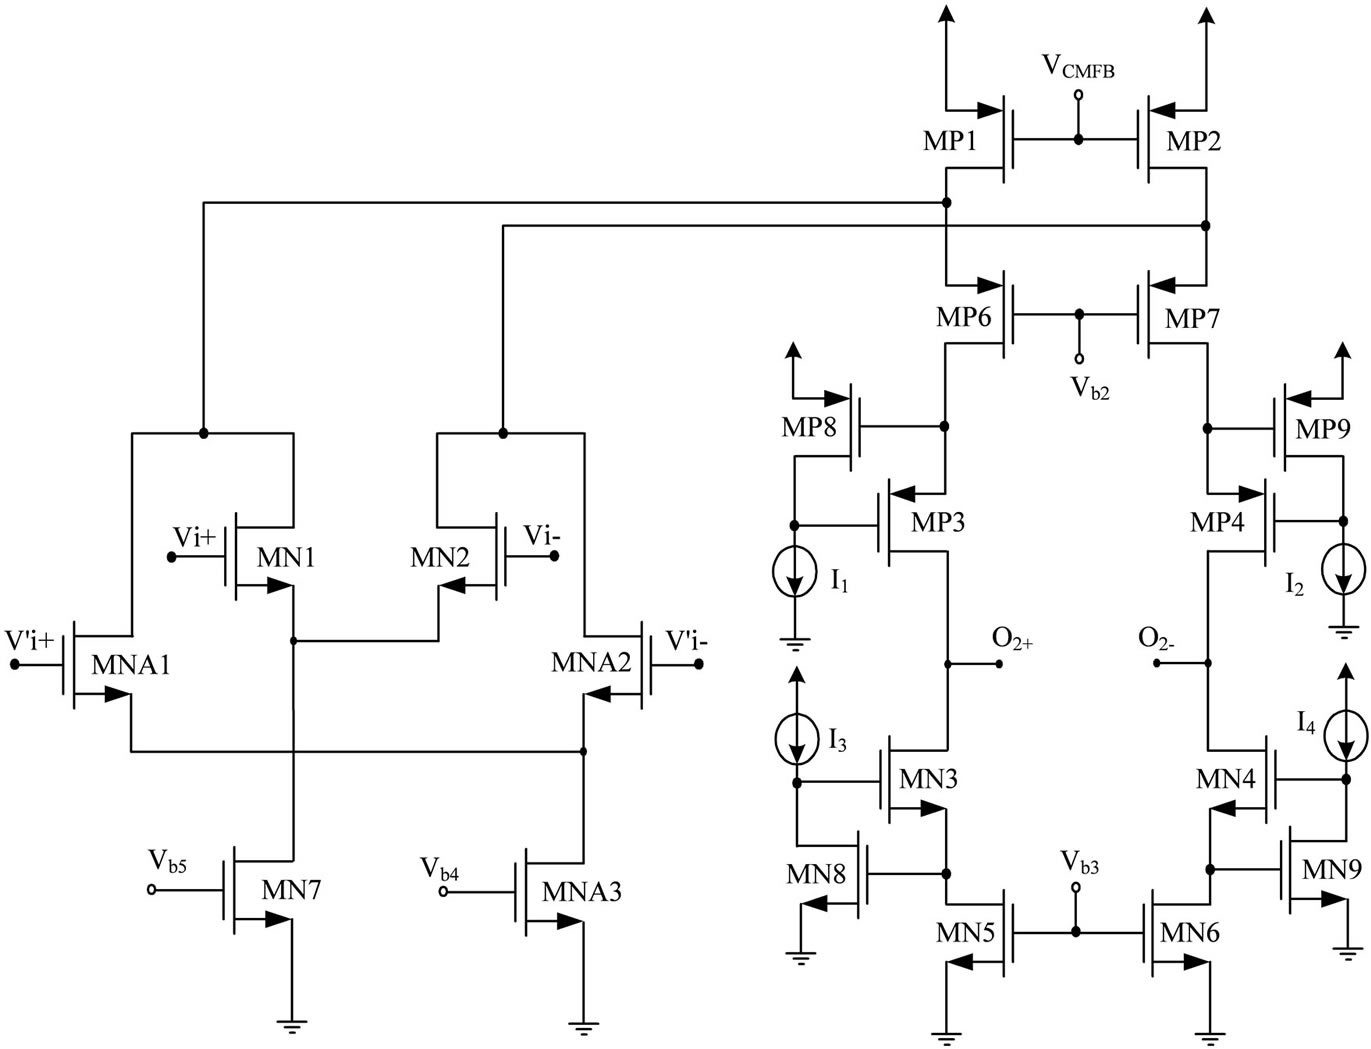 A Modified Approach For Cmos Auto Zeroed Offset Stabilized Opamp Integratedcircuit Differential Amplifier Circuit Diagram Schematic Of Gm2 Stage